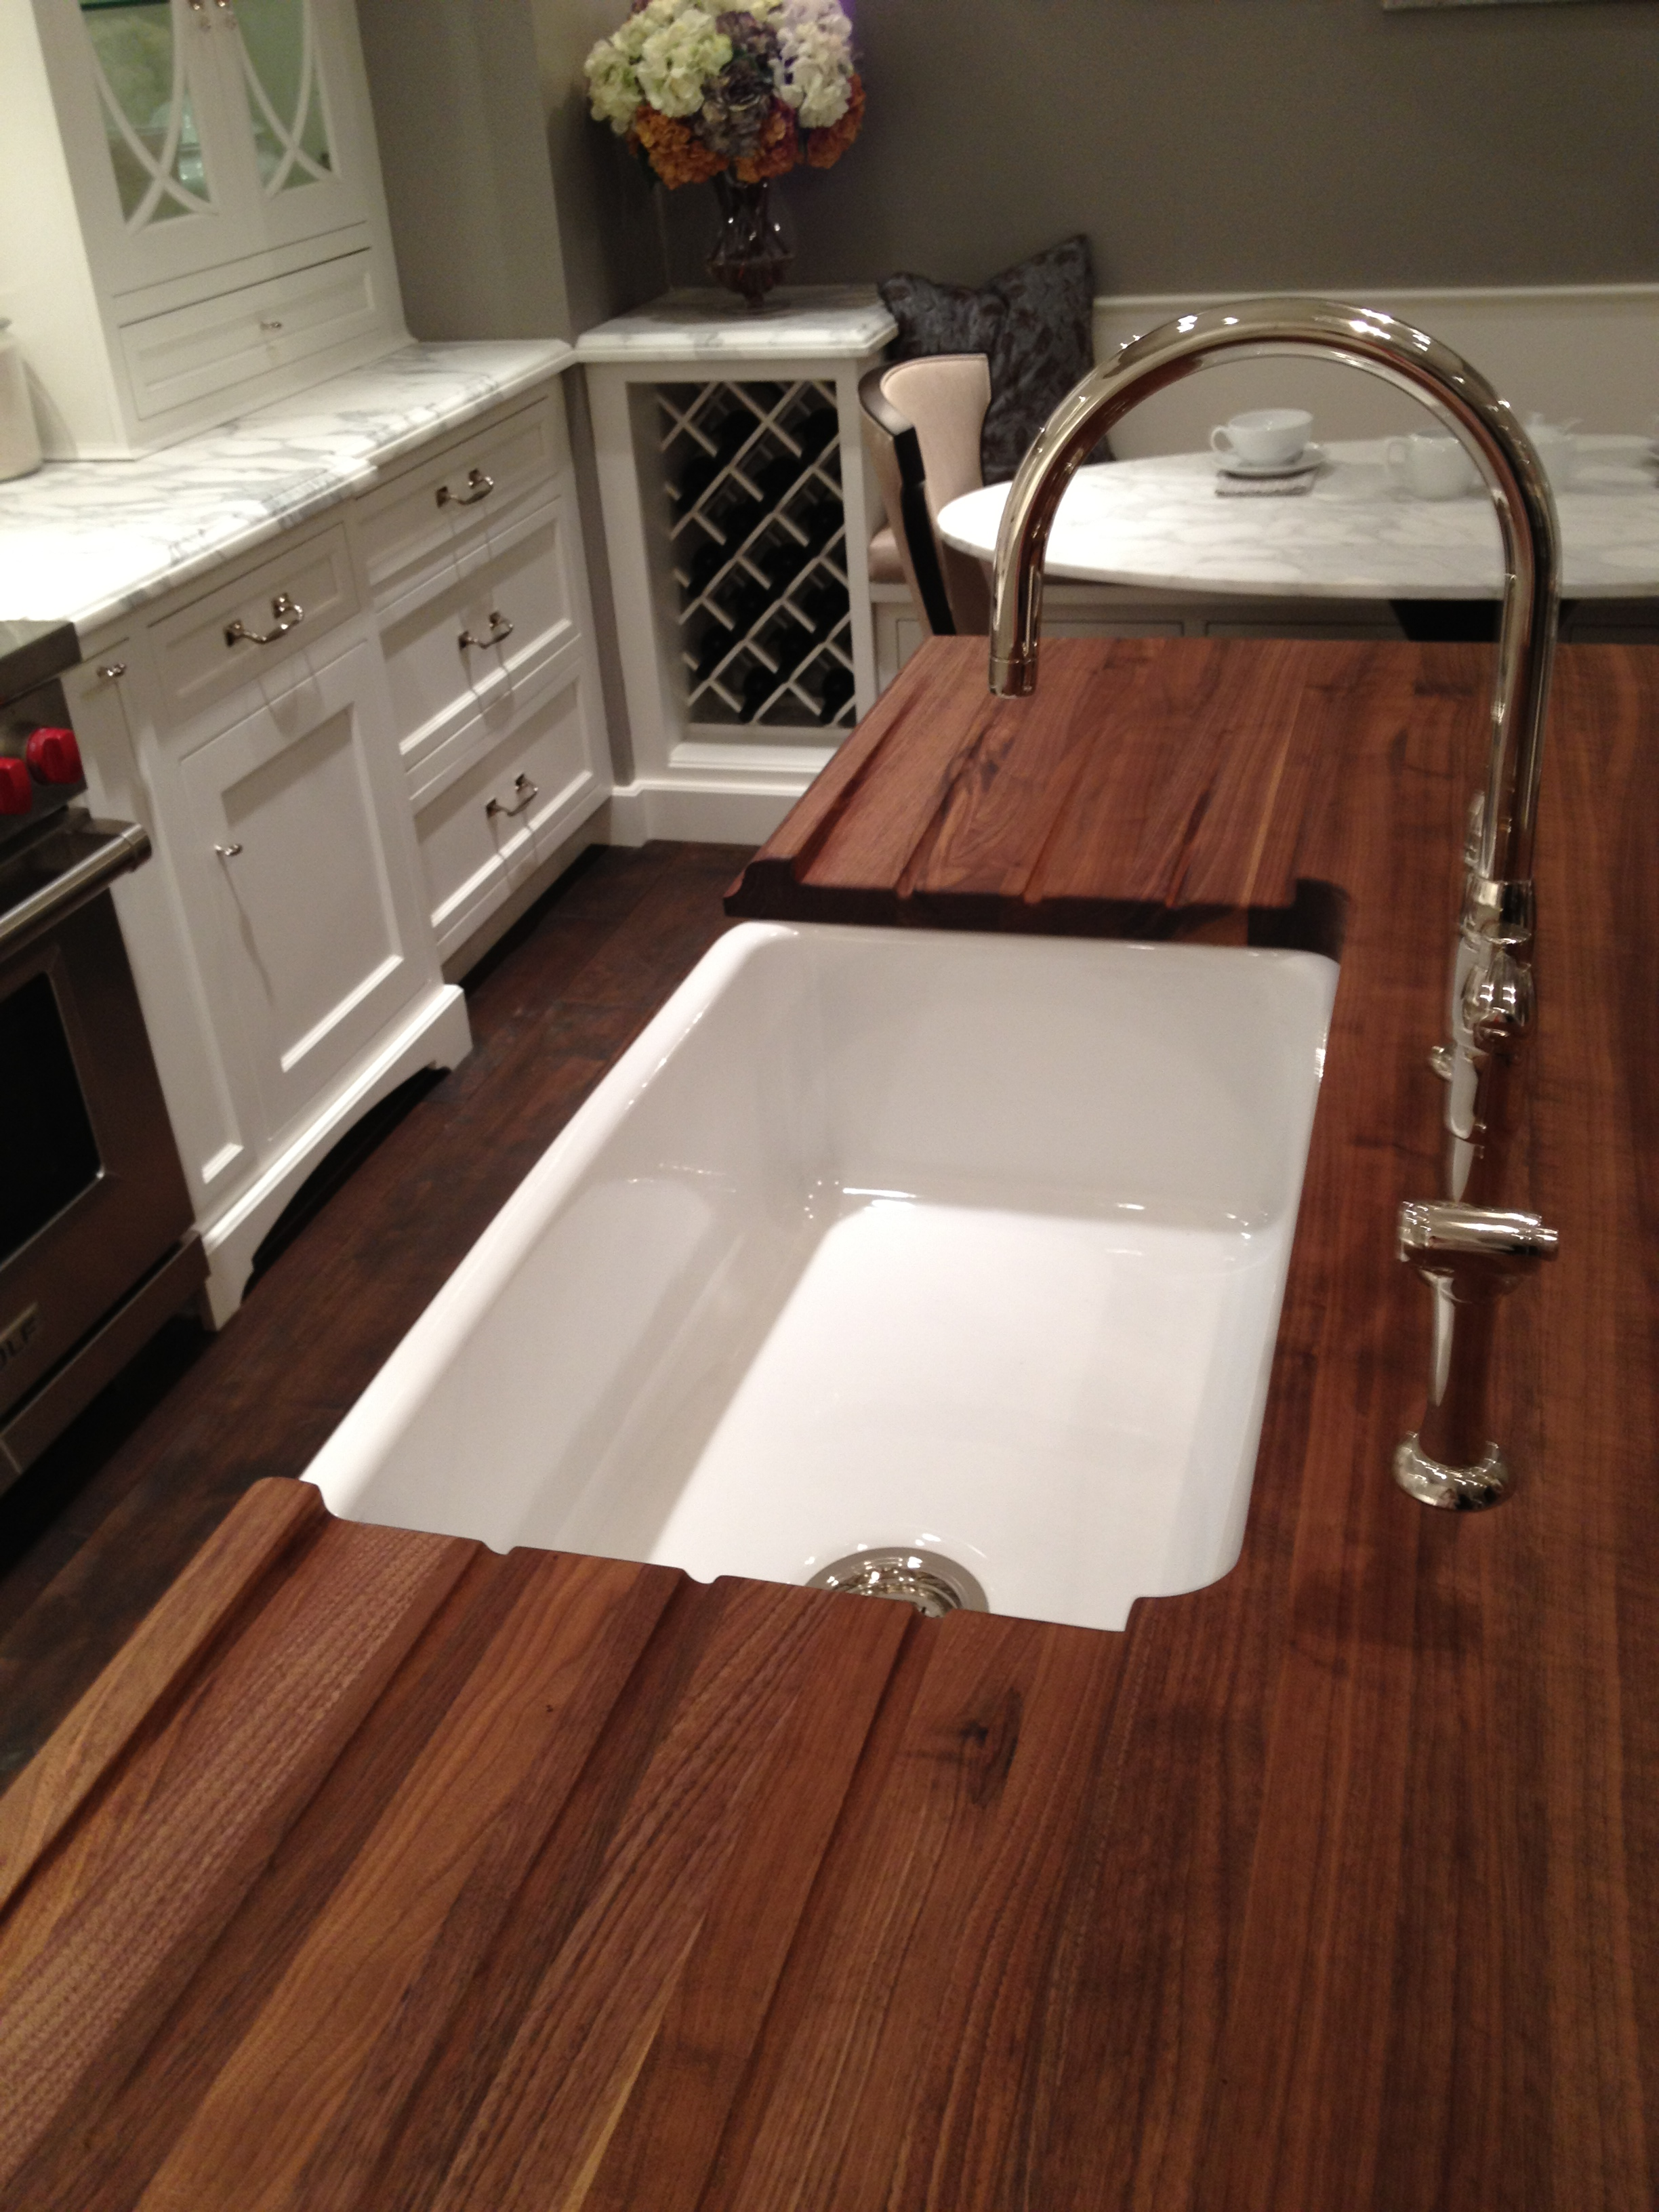 Countertop Kitchen Sink : undermount sink - Wood Countertop, Butcherblock and Bar Top Blog